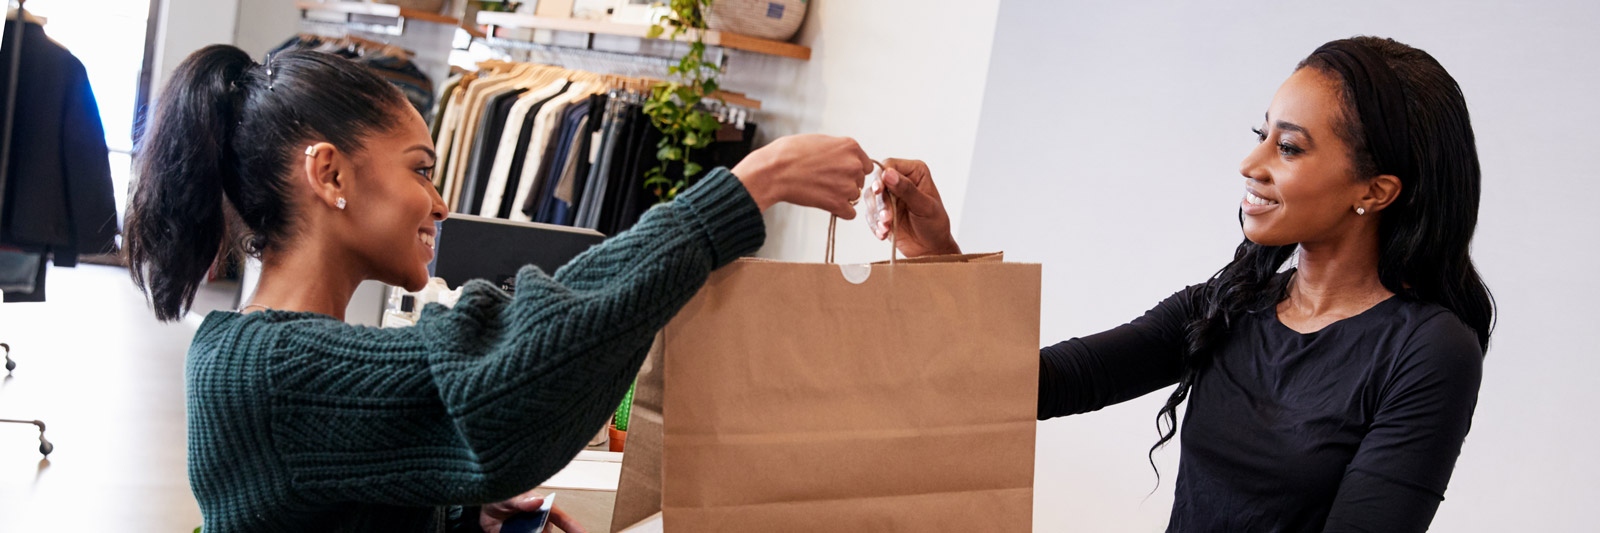 a retail assitant passing a bag across the counter to a customer